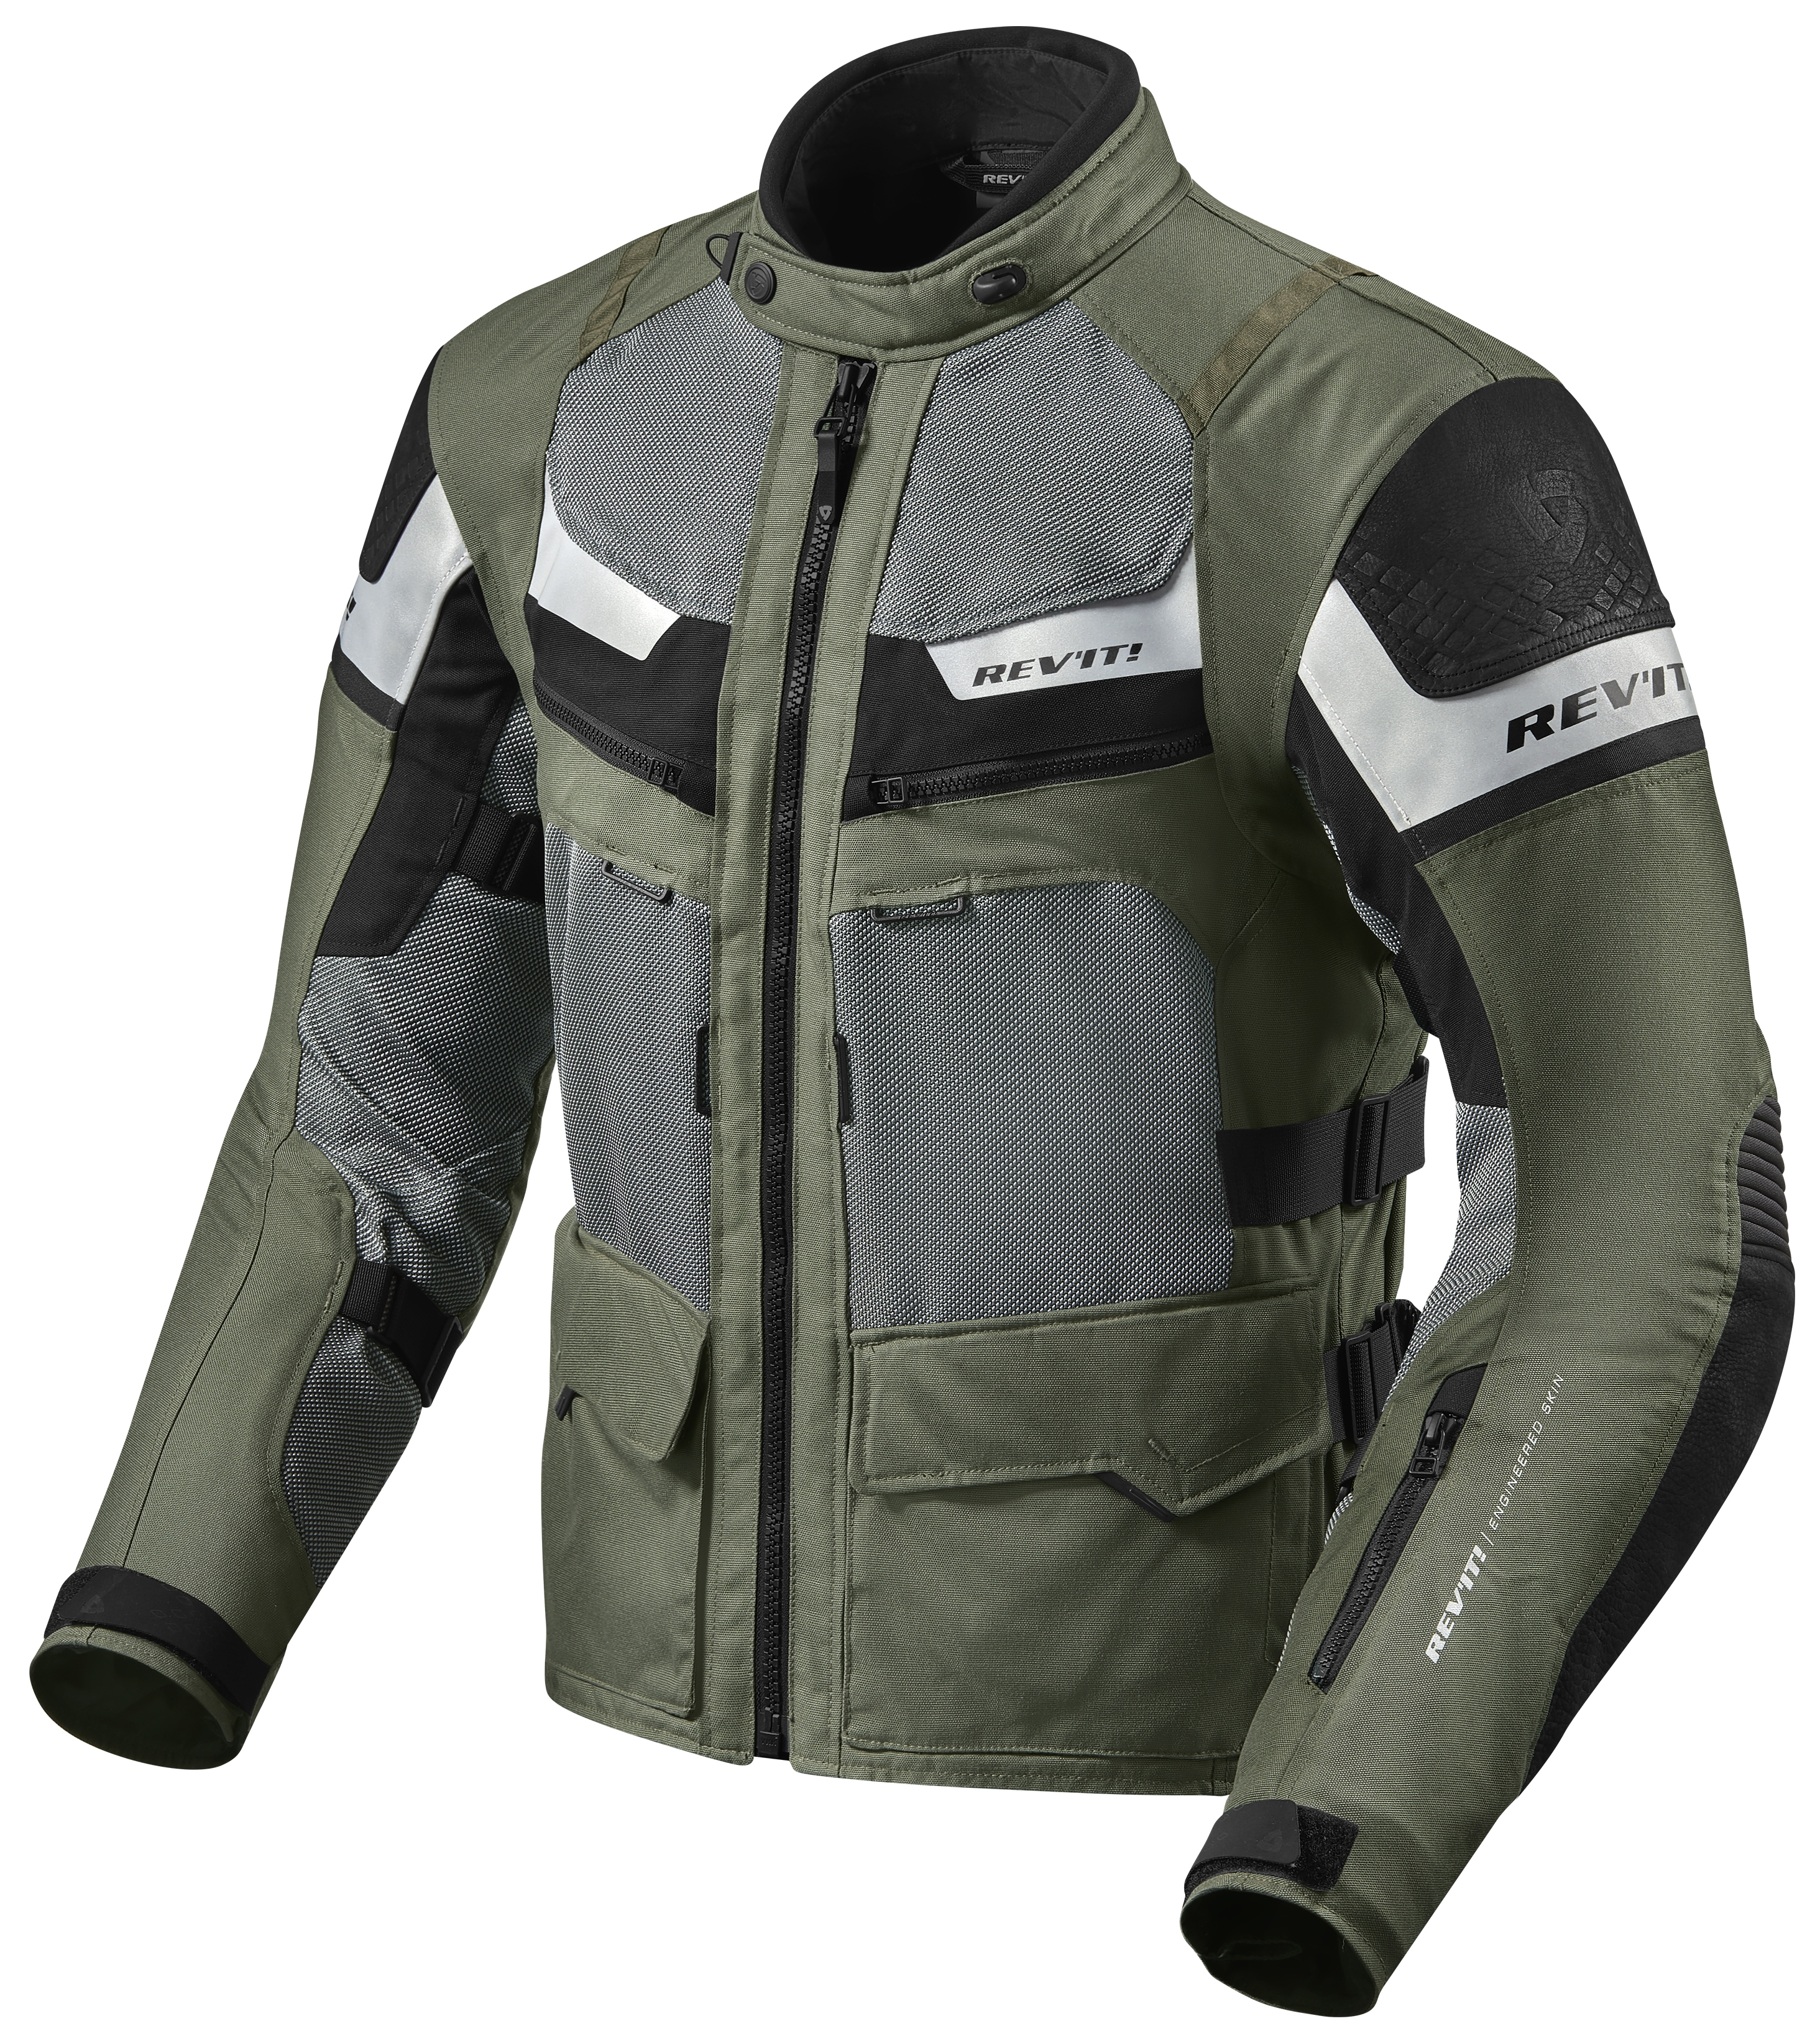 36e099e76 REV'IT! Cayenne Pro Jacket - RevZilla